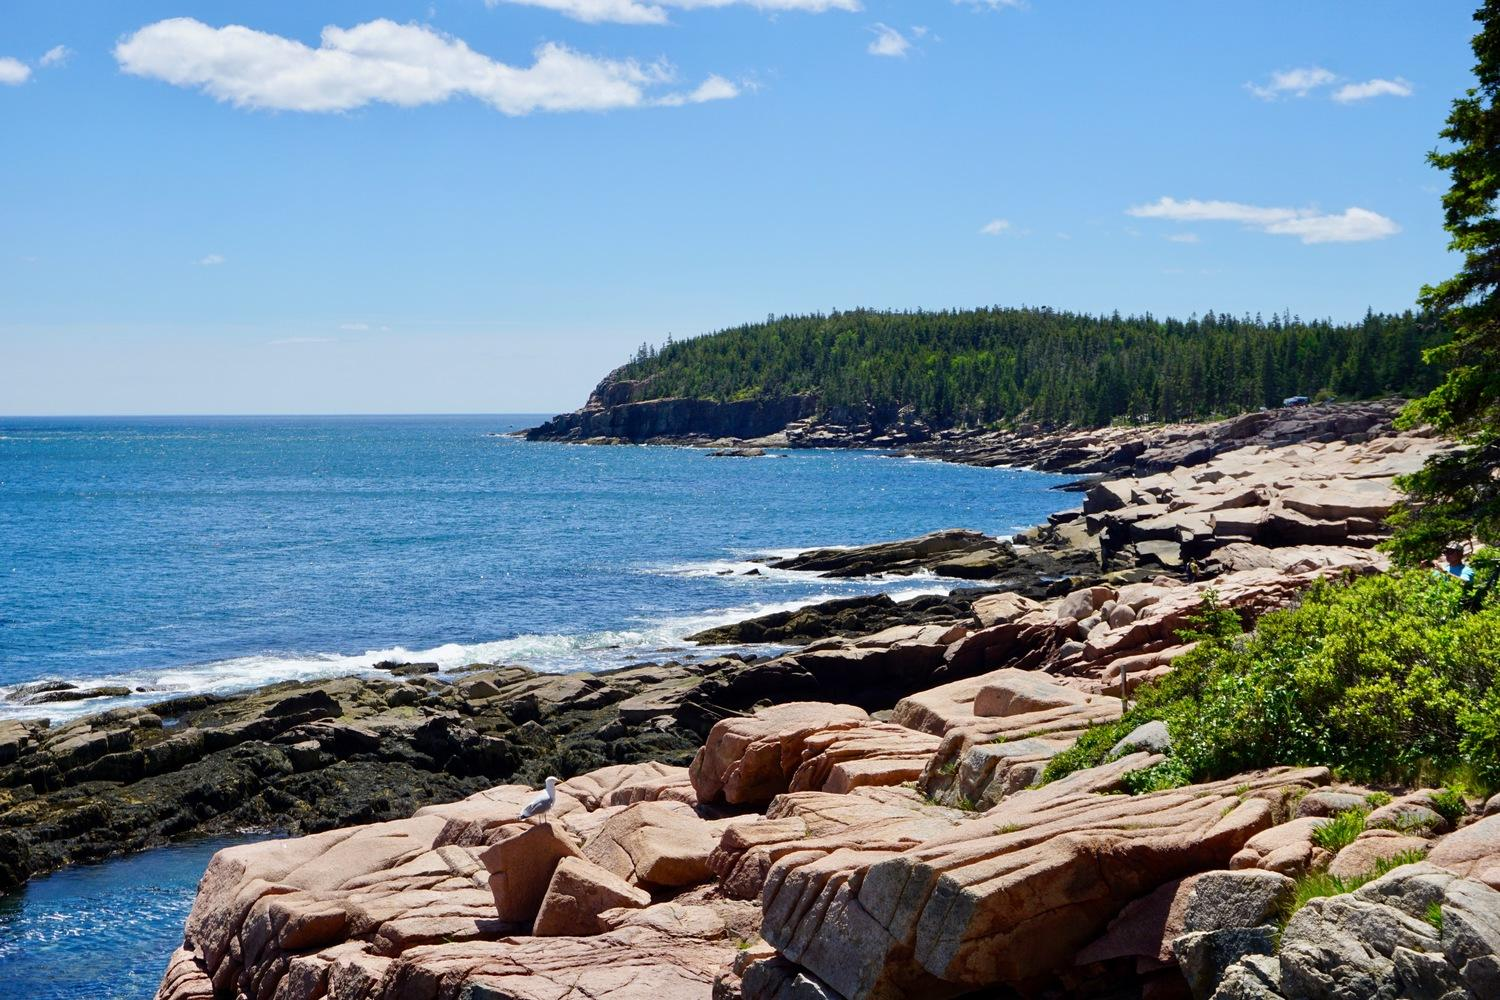 Ride from the Midcoast to Acadia National Park on this Downeast tour